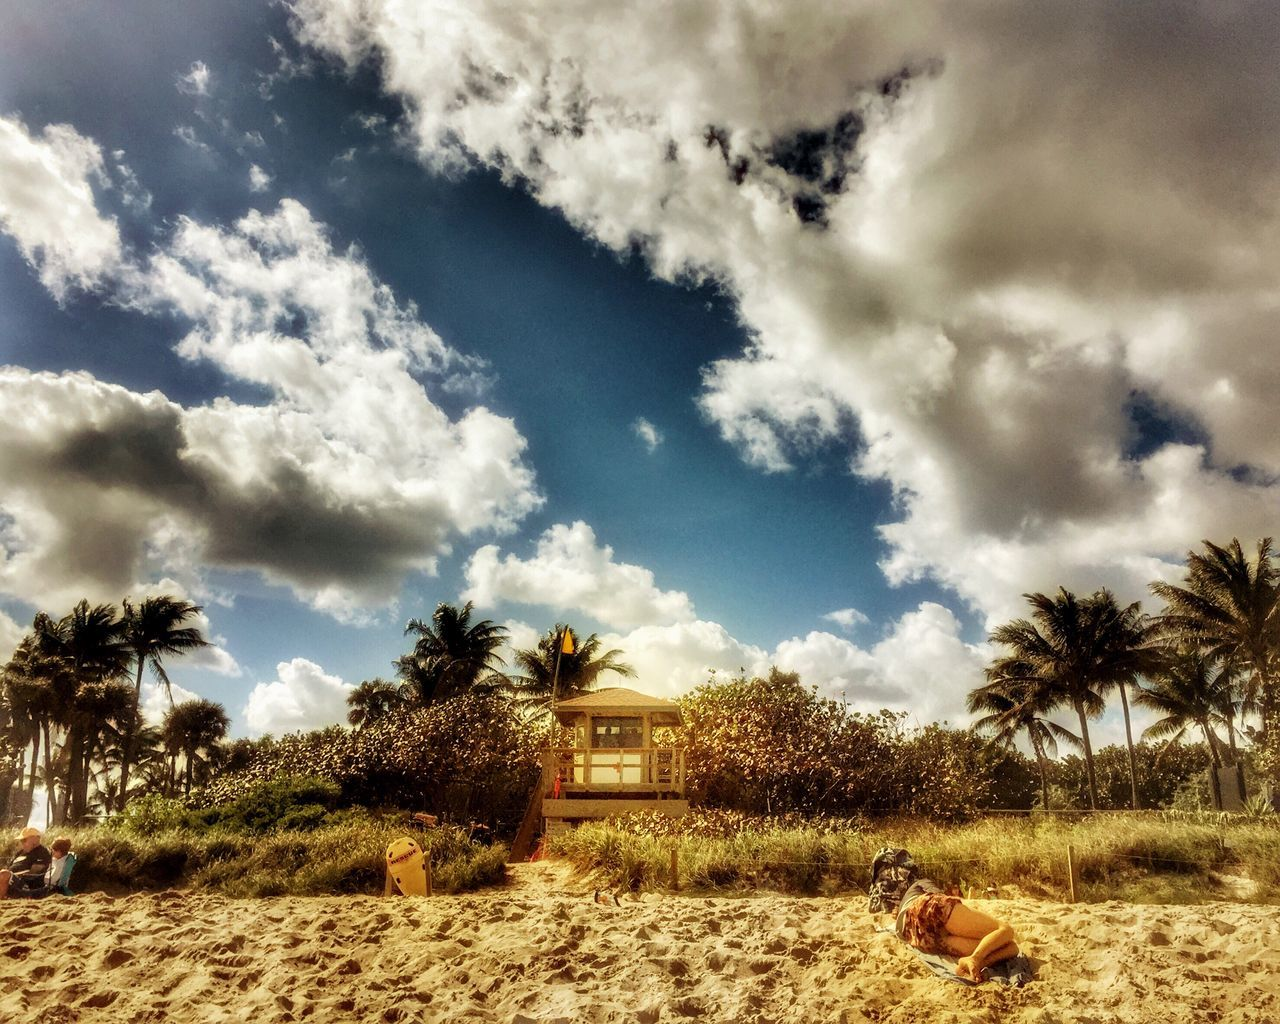 People Resting At Beach Against Cloudy Sky